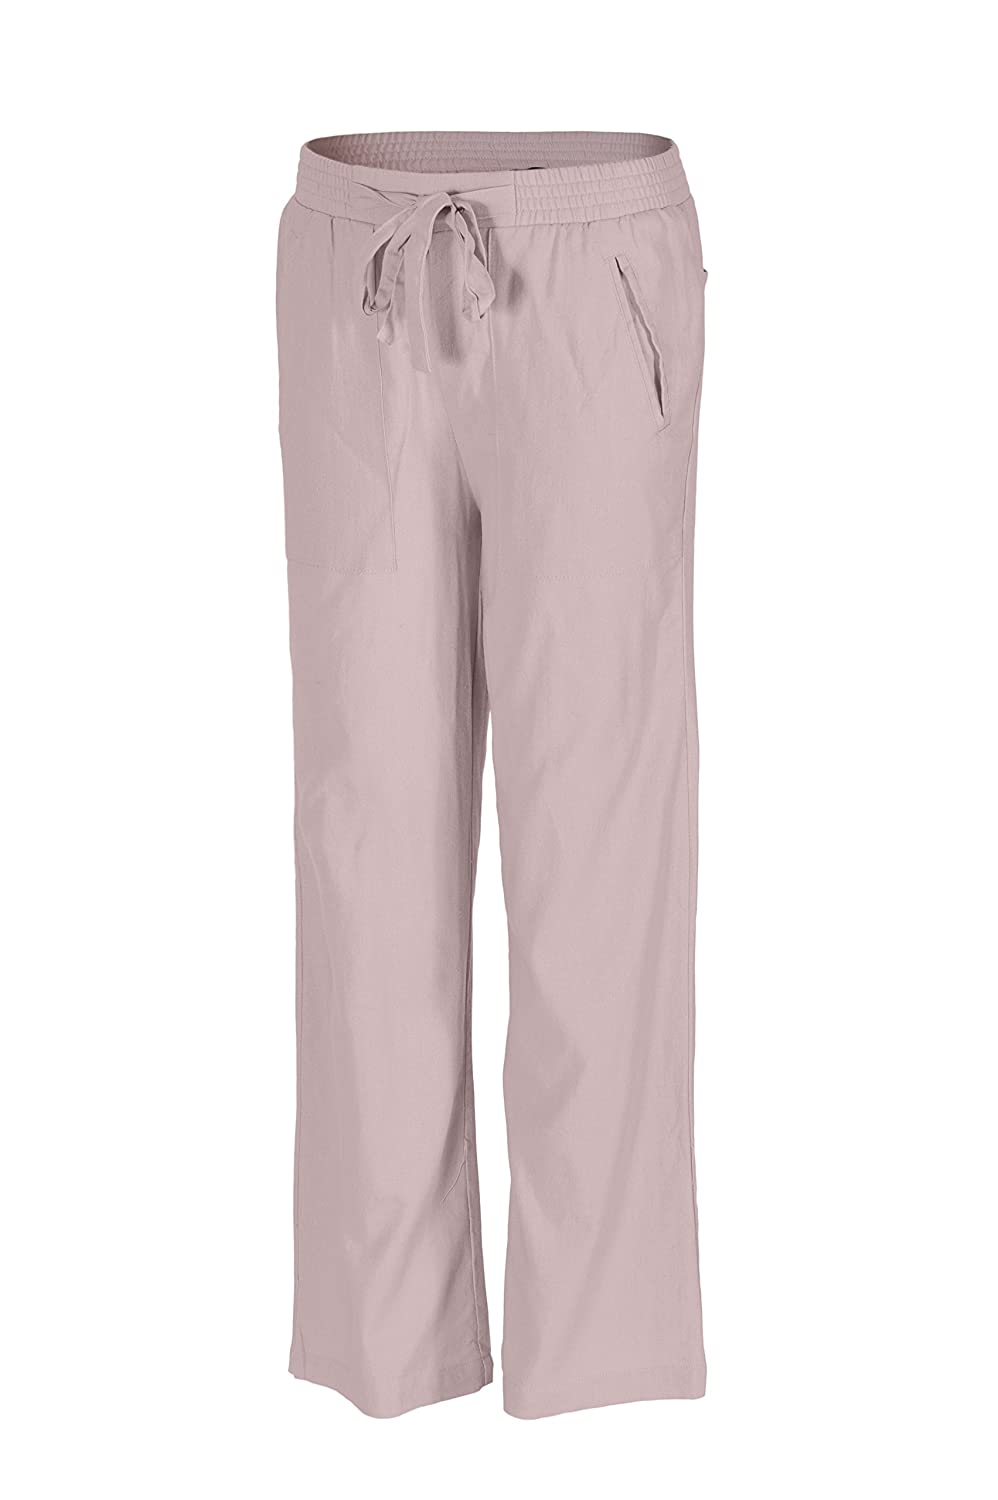 Beachcoco Womens Tie Waist Band Linen Pants